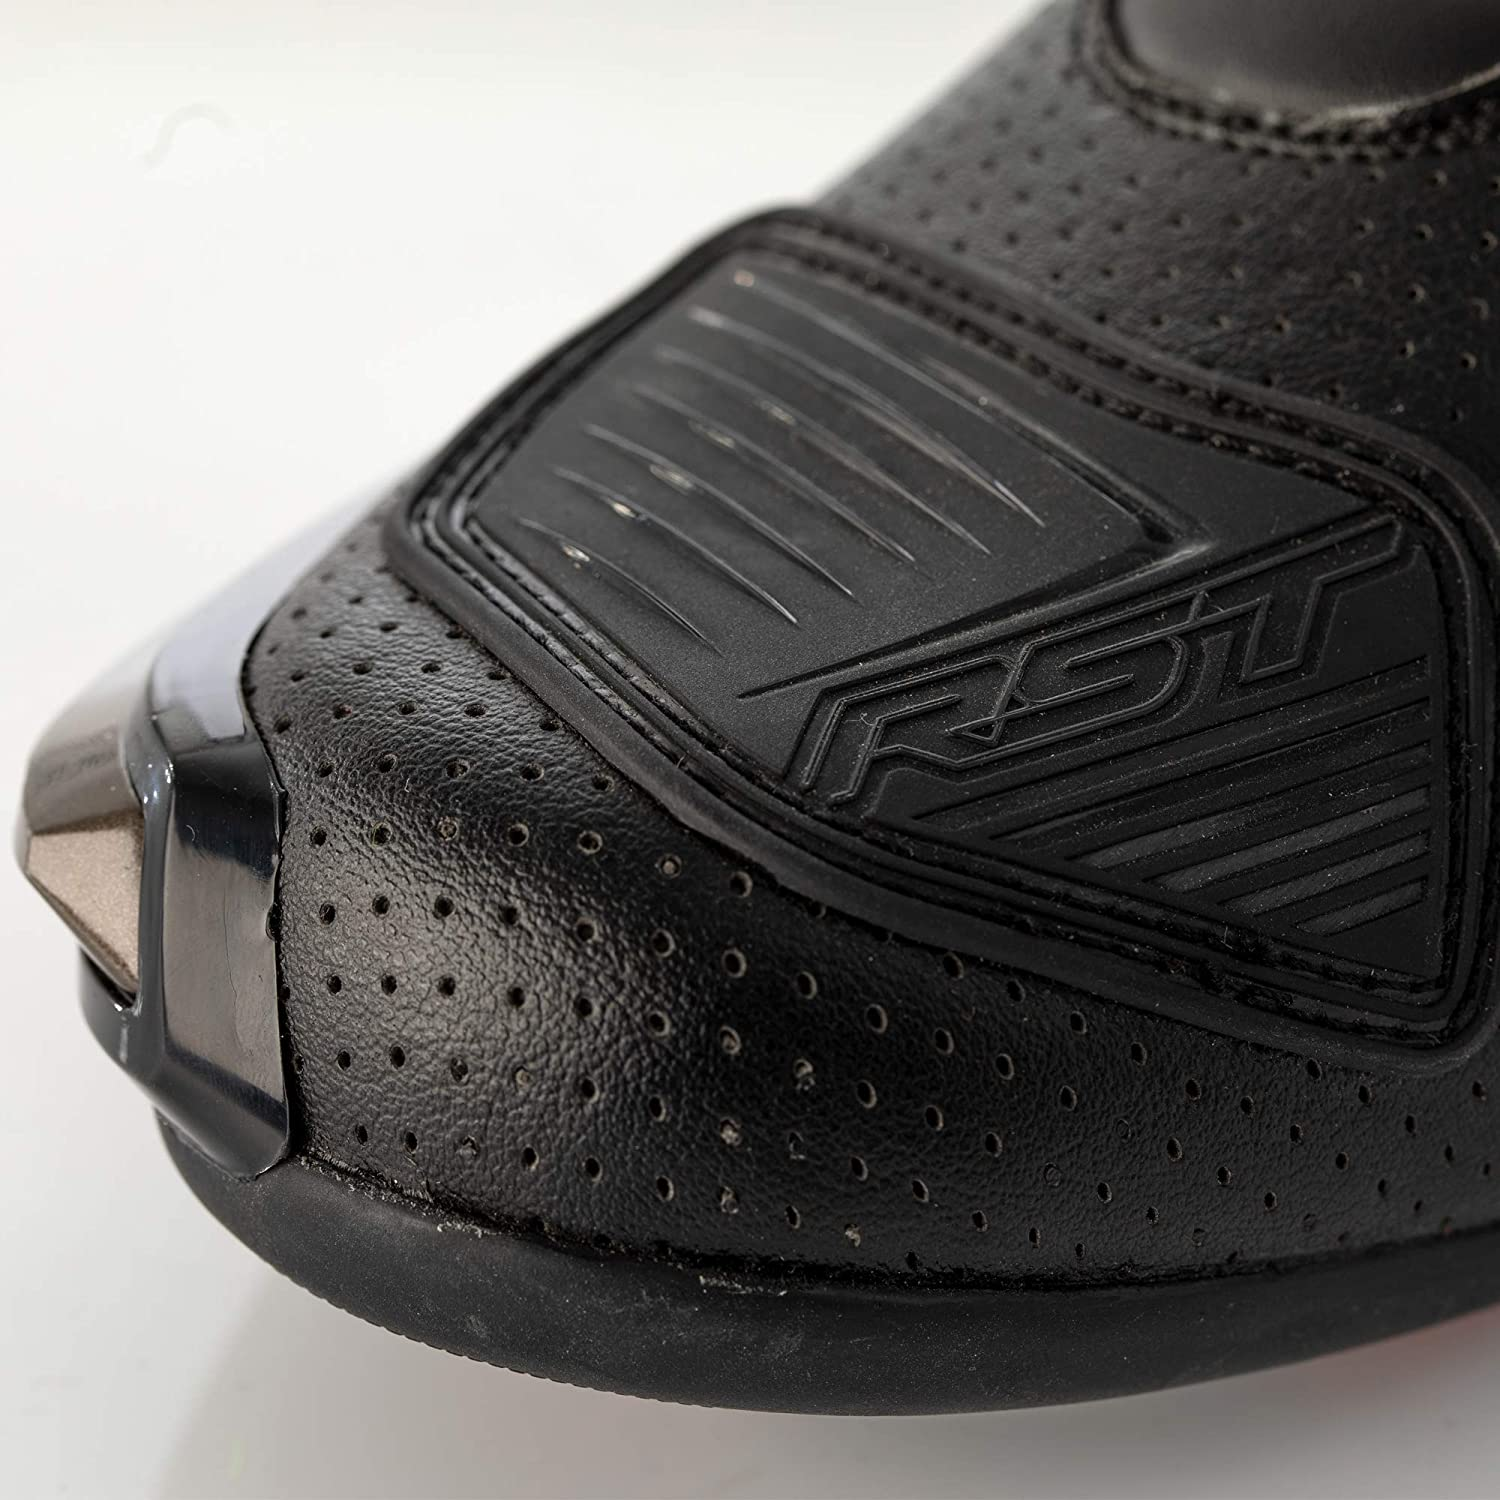 41 RST 2341 Tractech Evo III Short Leather Boots Black